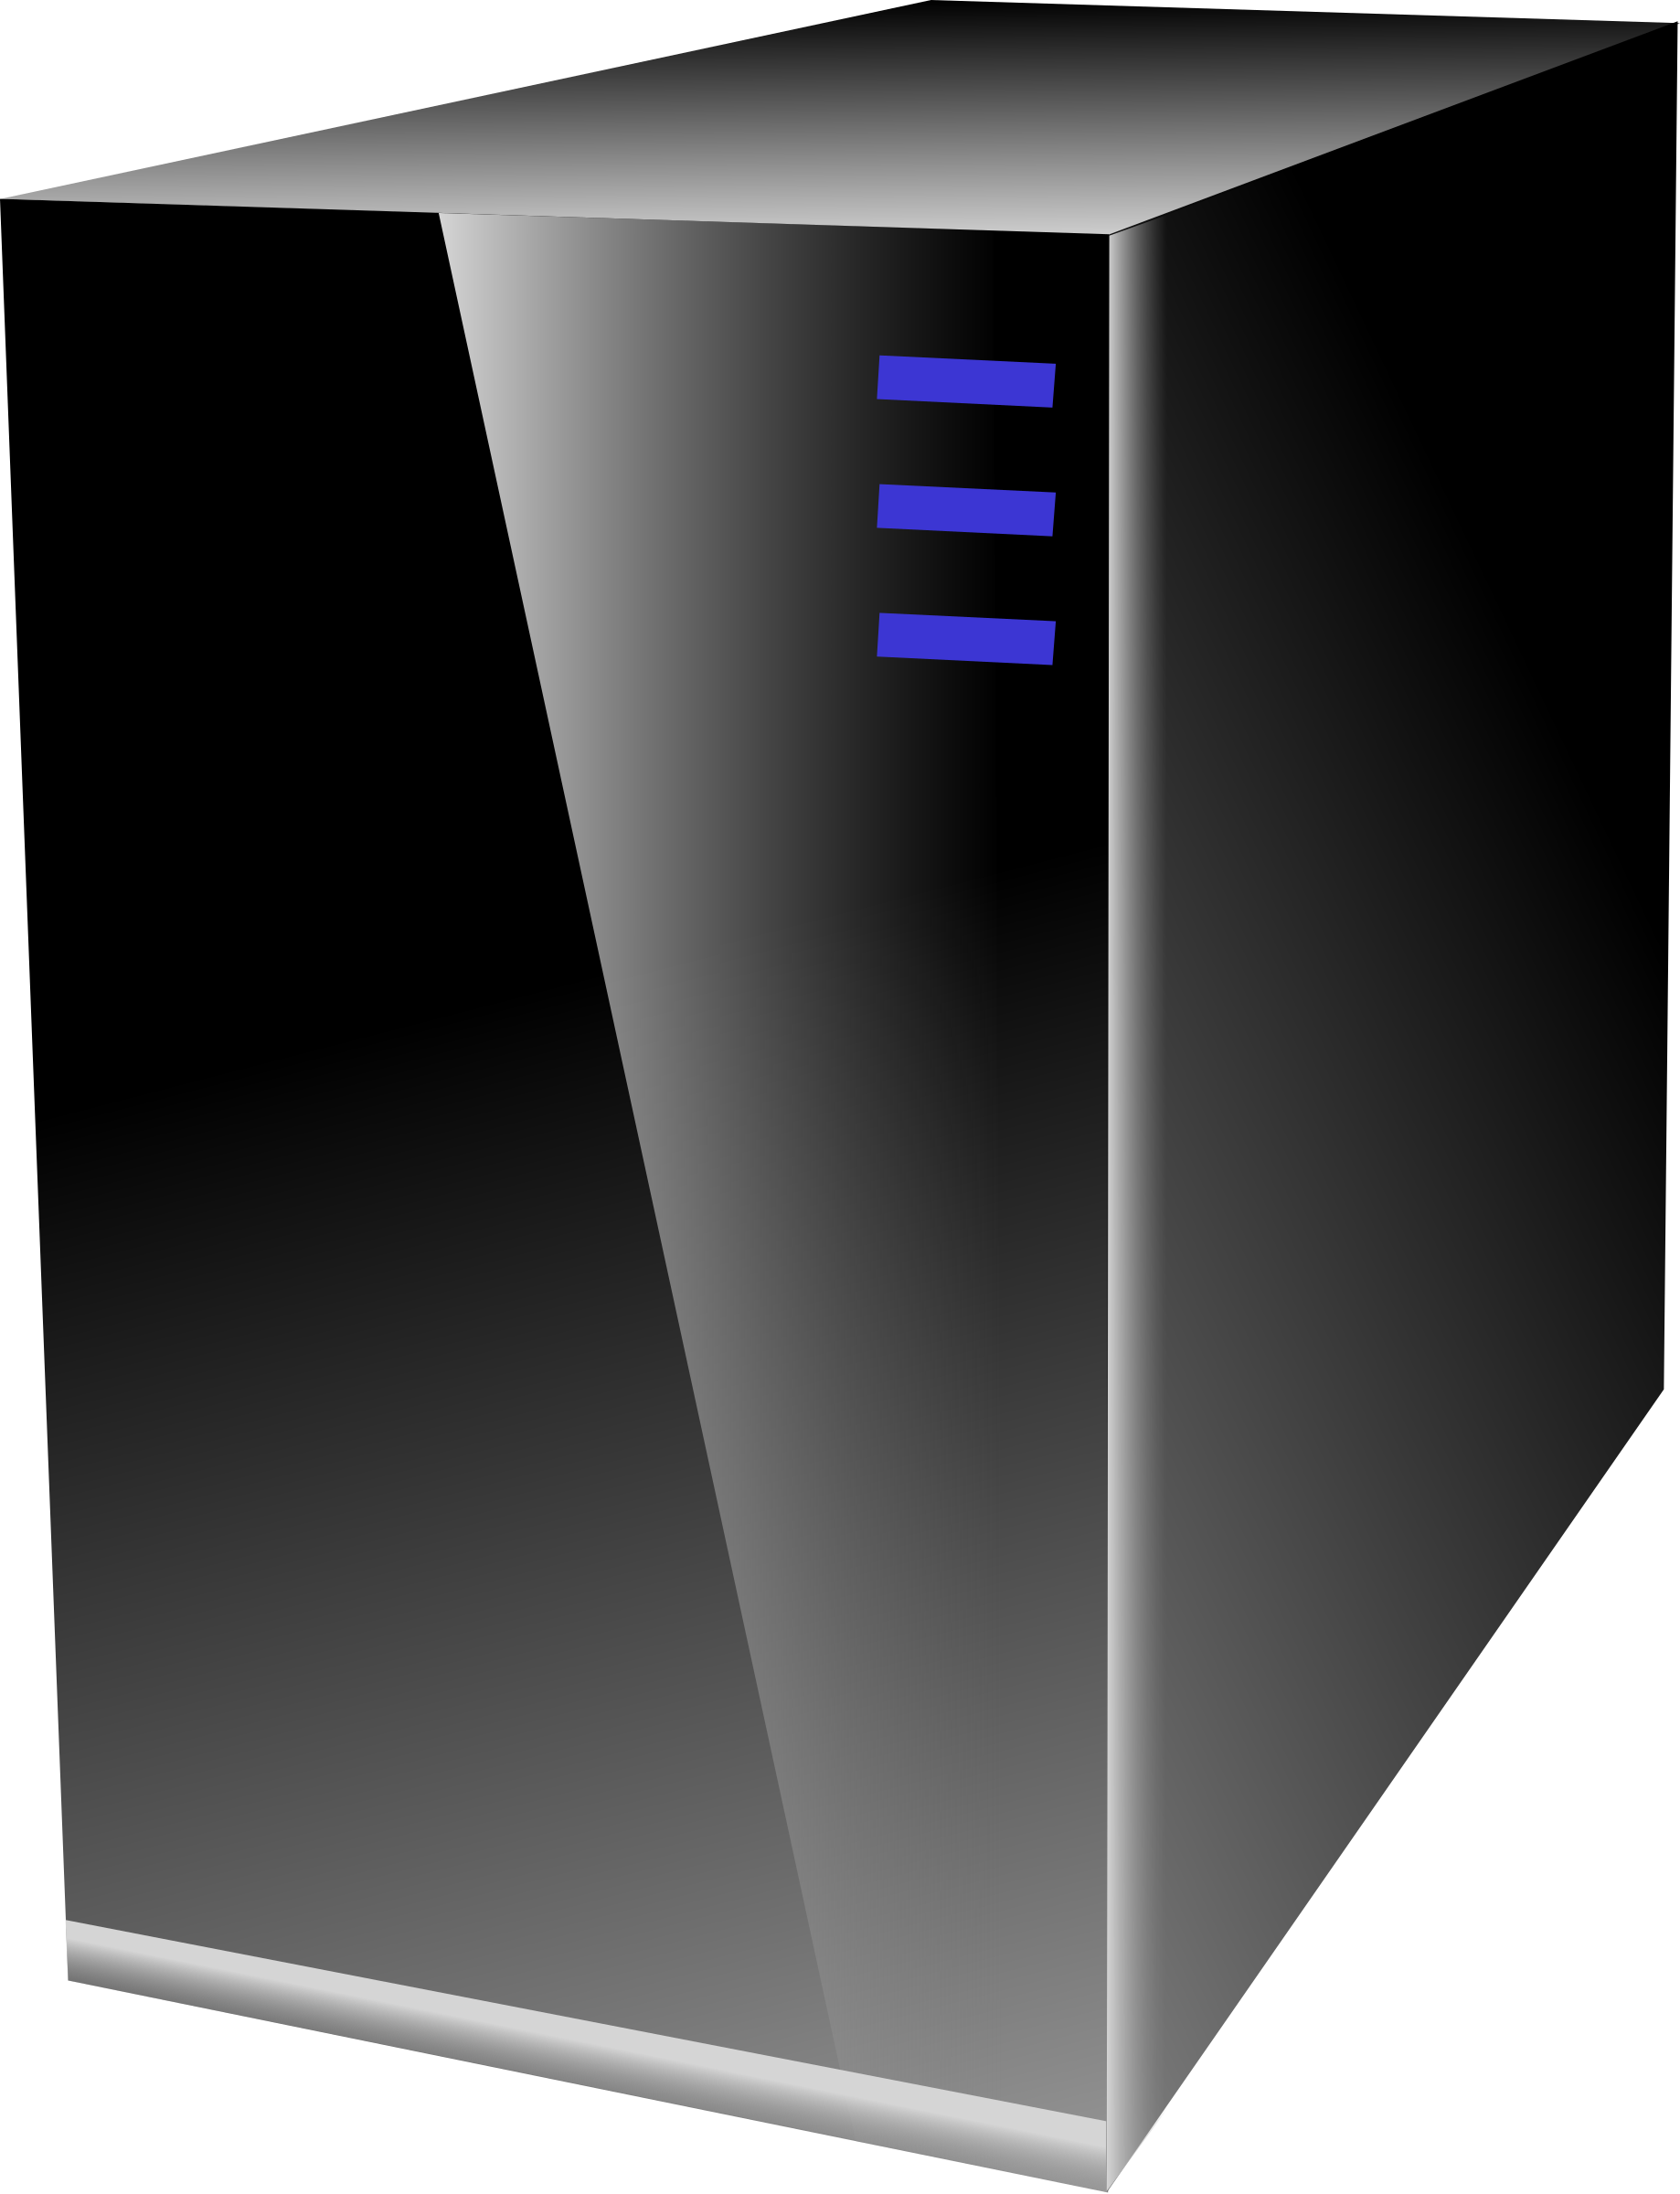 Cpu cabinet icon png